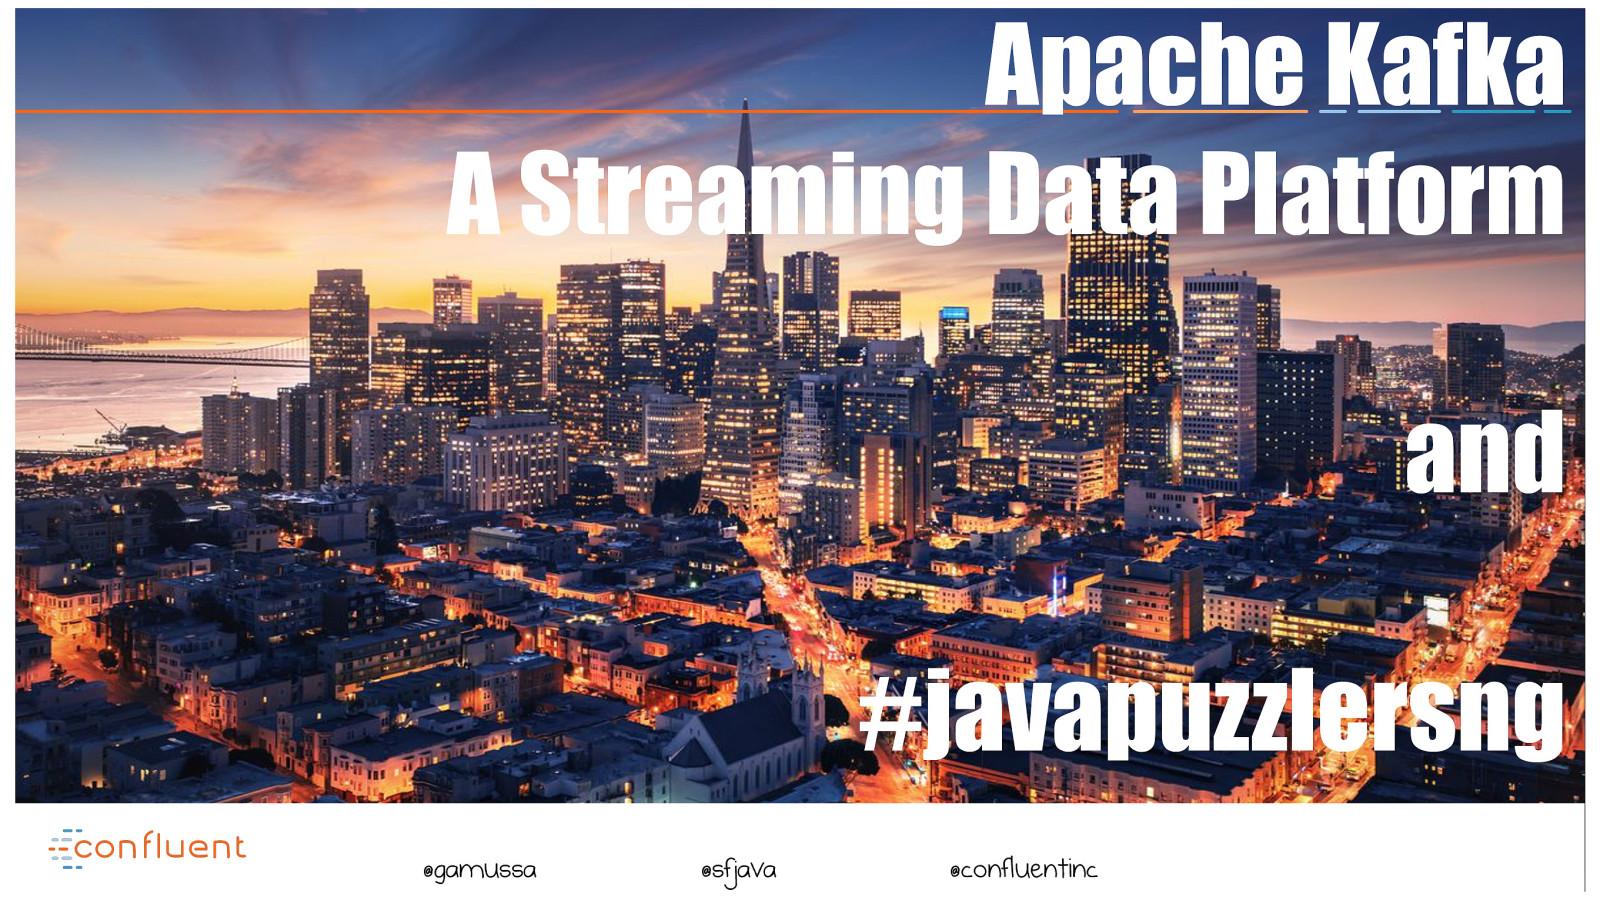 Apache Kafka — A Streaming Data Platform